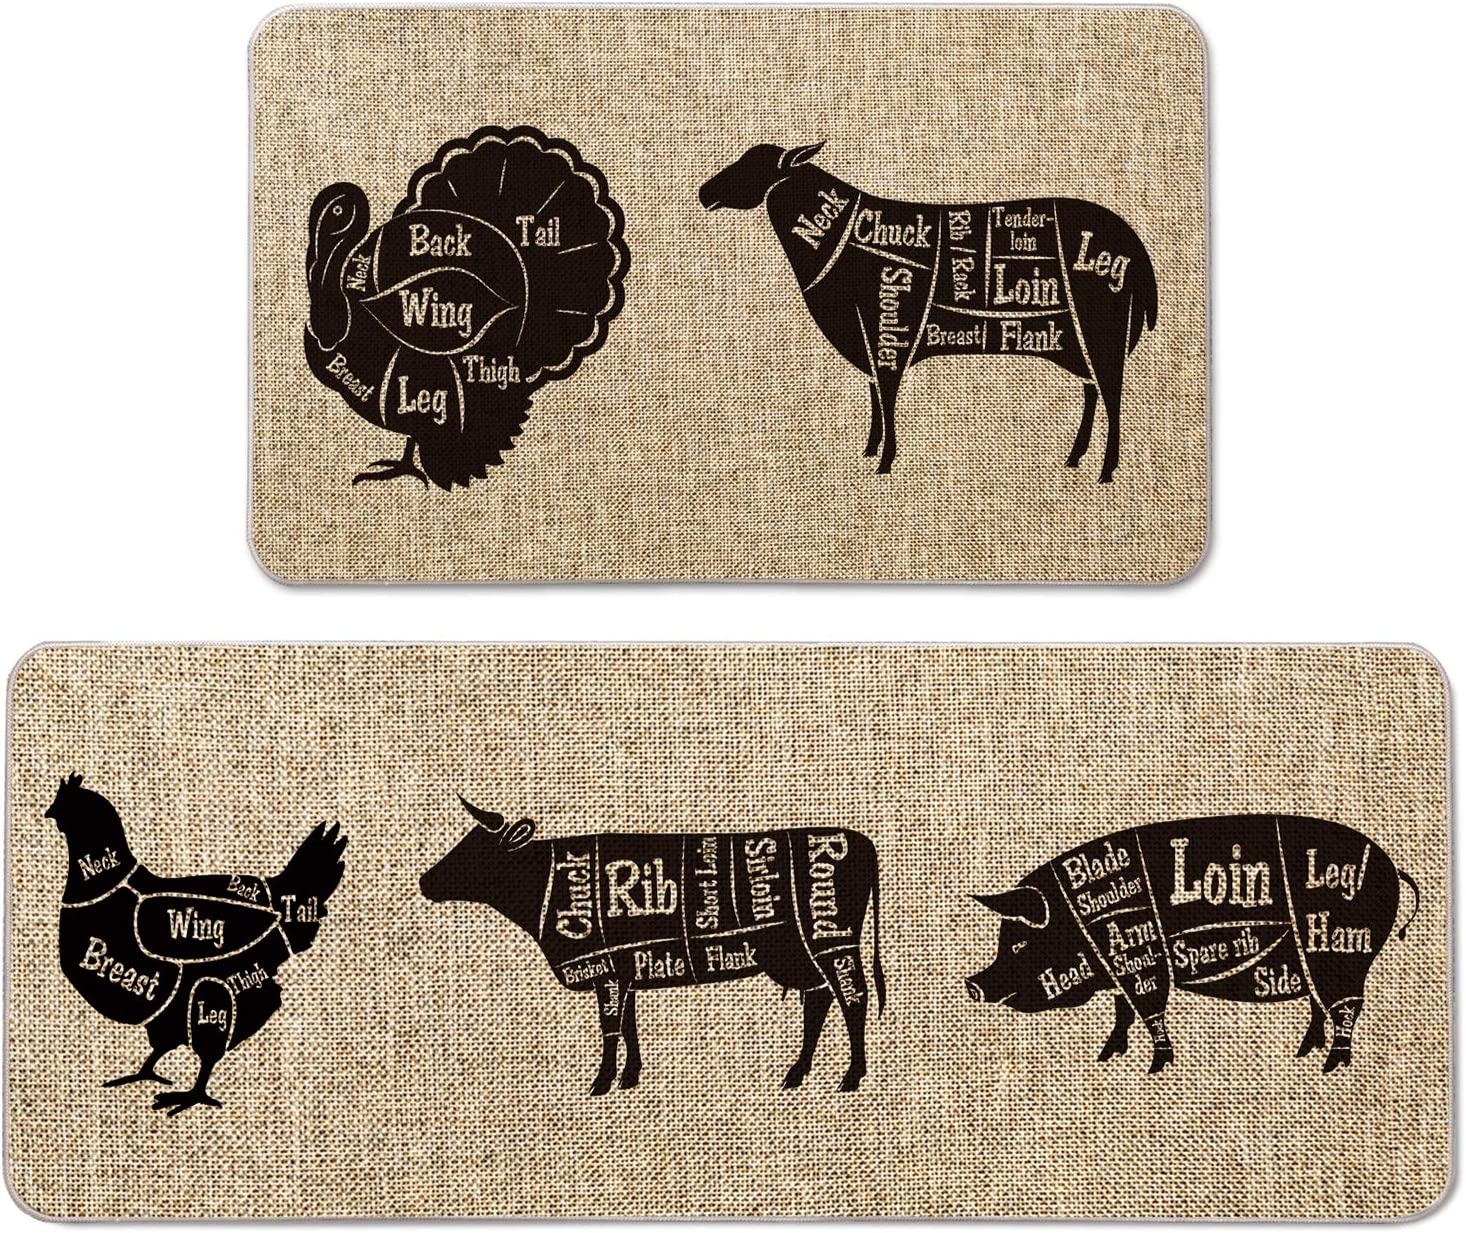 Artoid Mode Turkey Goat Chicken Cow Pig Decorative Kitchen Mats Set of 2, Farmhouse Seasonal Holiday Party Low-Profile Floor Mat for Home Kitchen - 17x29 and 17x47 Inch